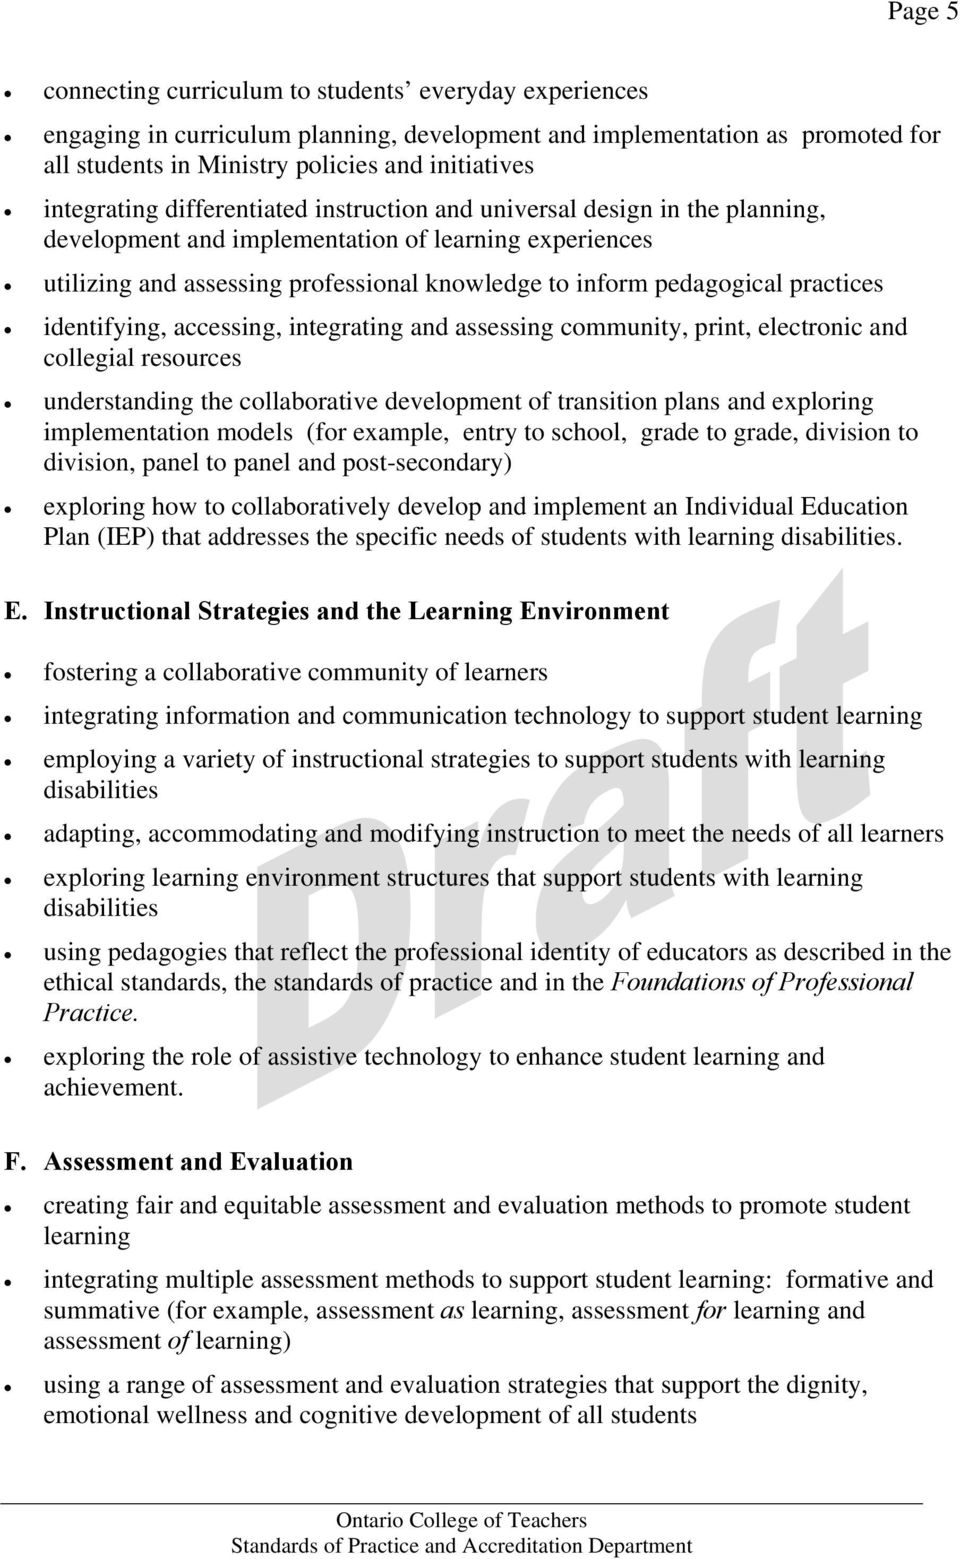 pedagogical practices identifying, accessing, integrating and assessing community, print, electronic and collegial resources understanding the collaborative development of transition plans and